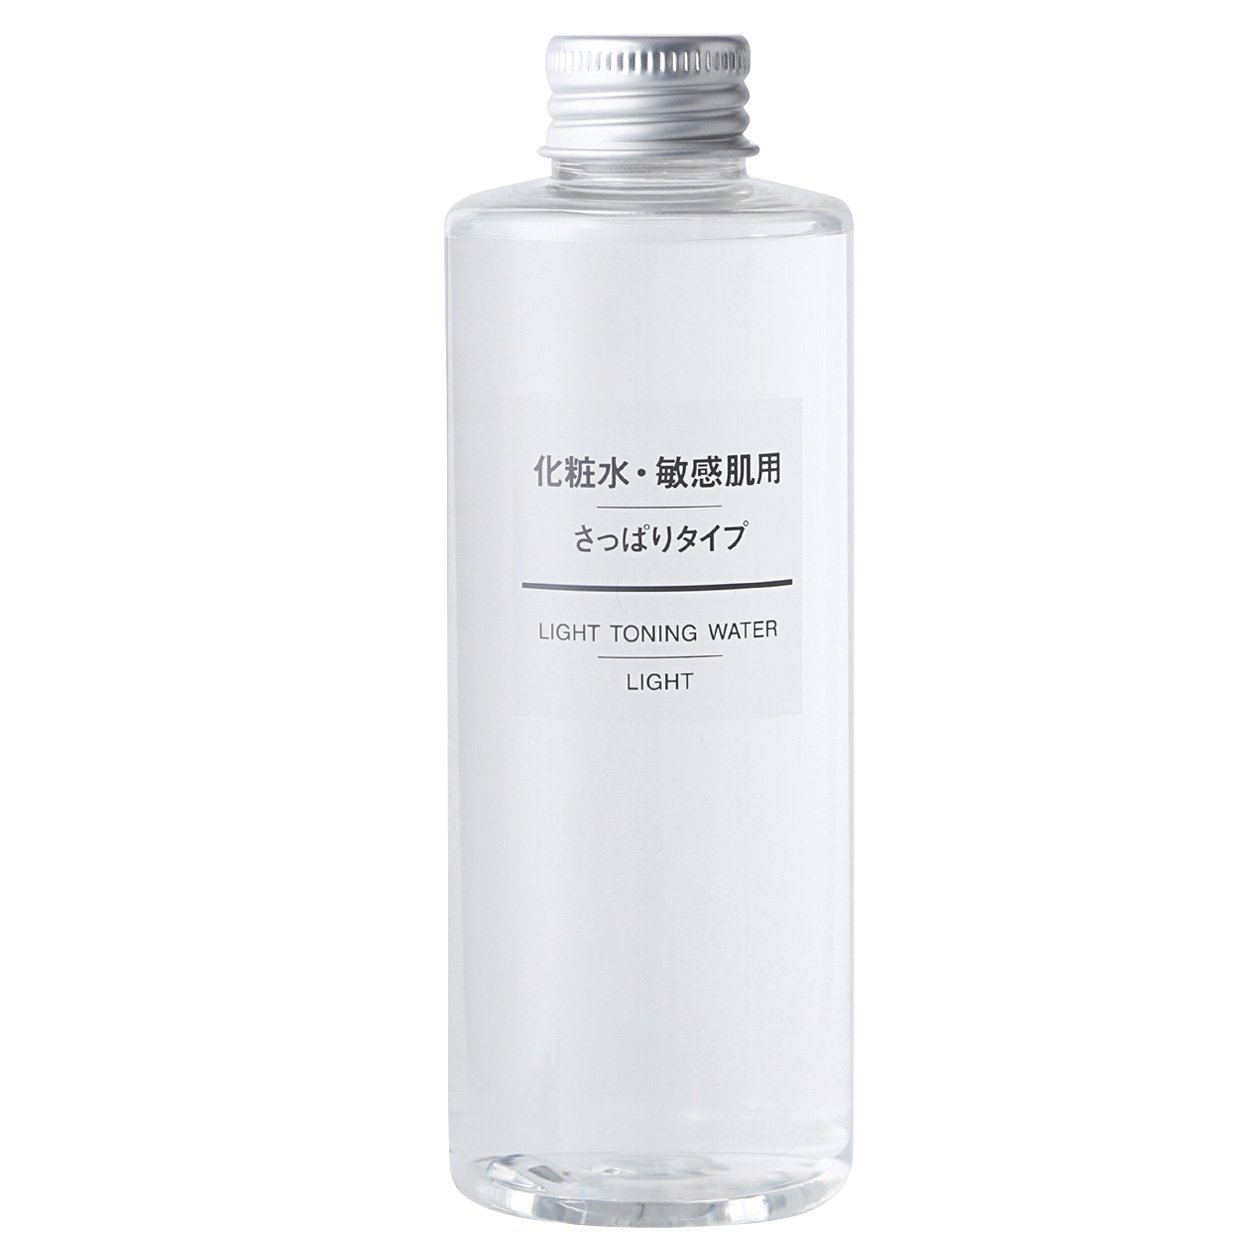 MUJI Sensitive Skin Moisturizing Toning Water/Toner Light - 200ml